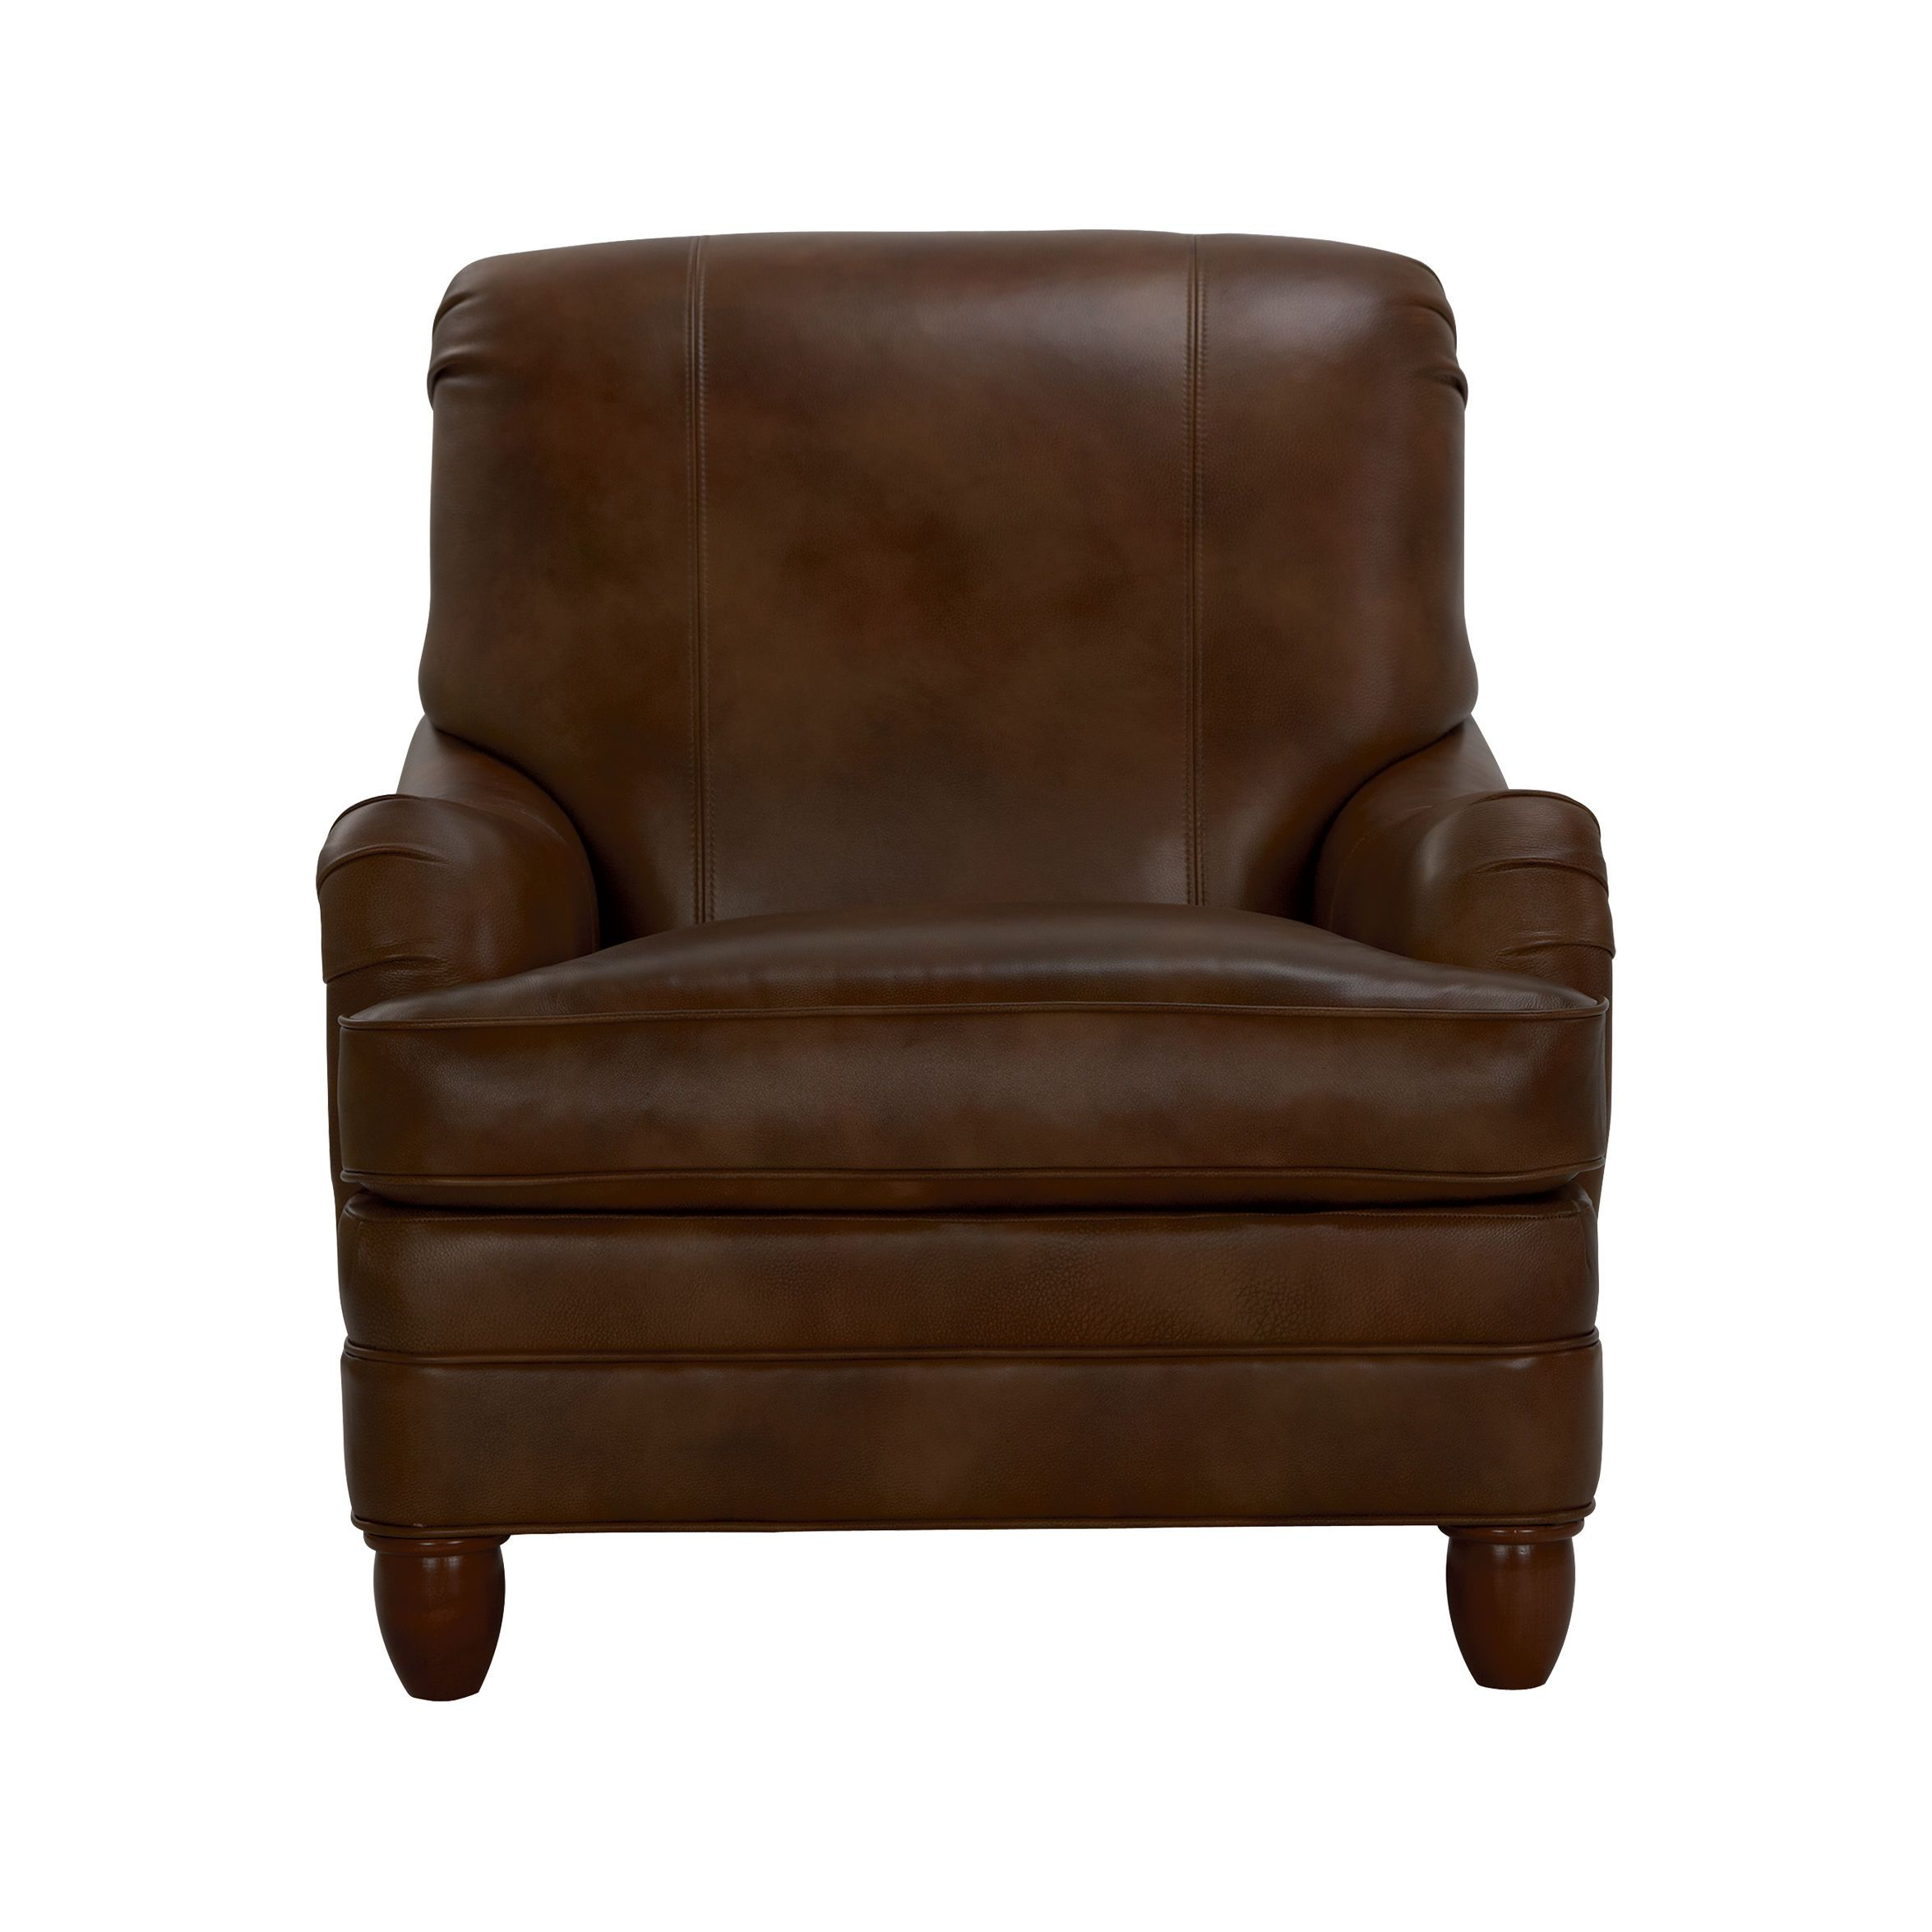 Charmant Mercer Leather Chair   Ethan Allen US